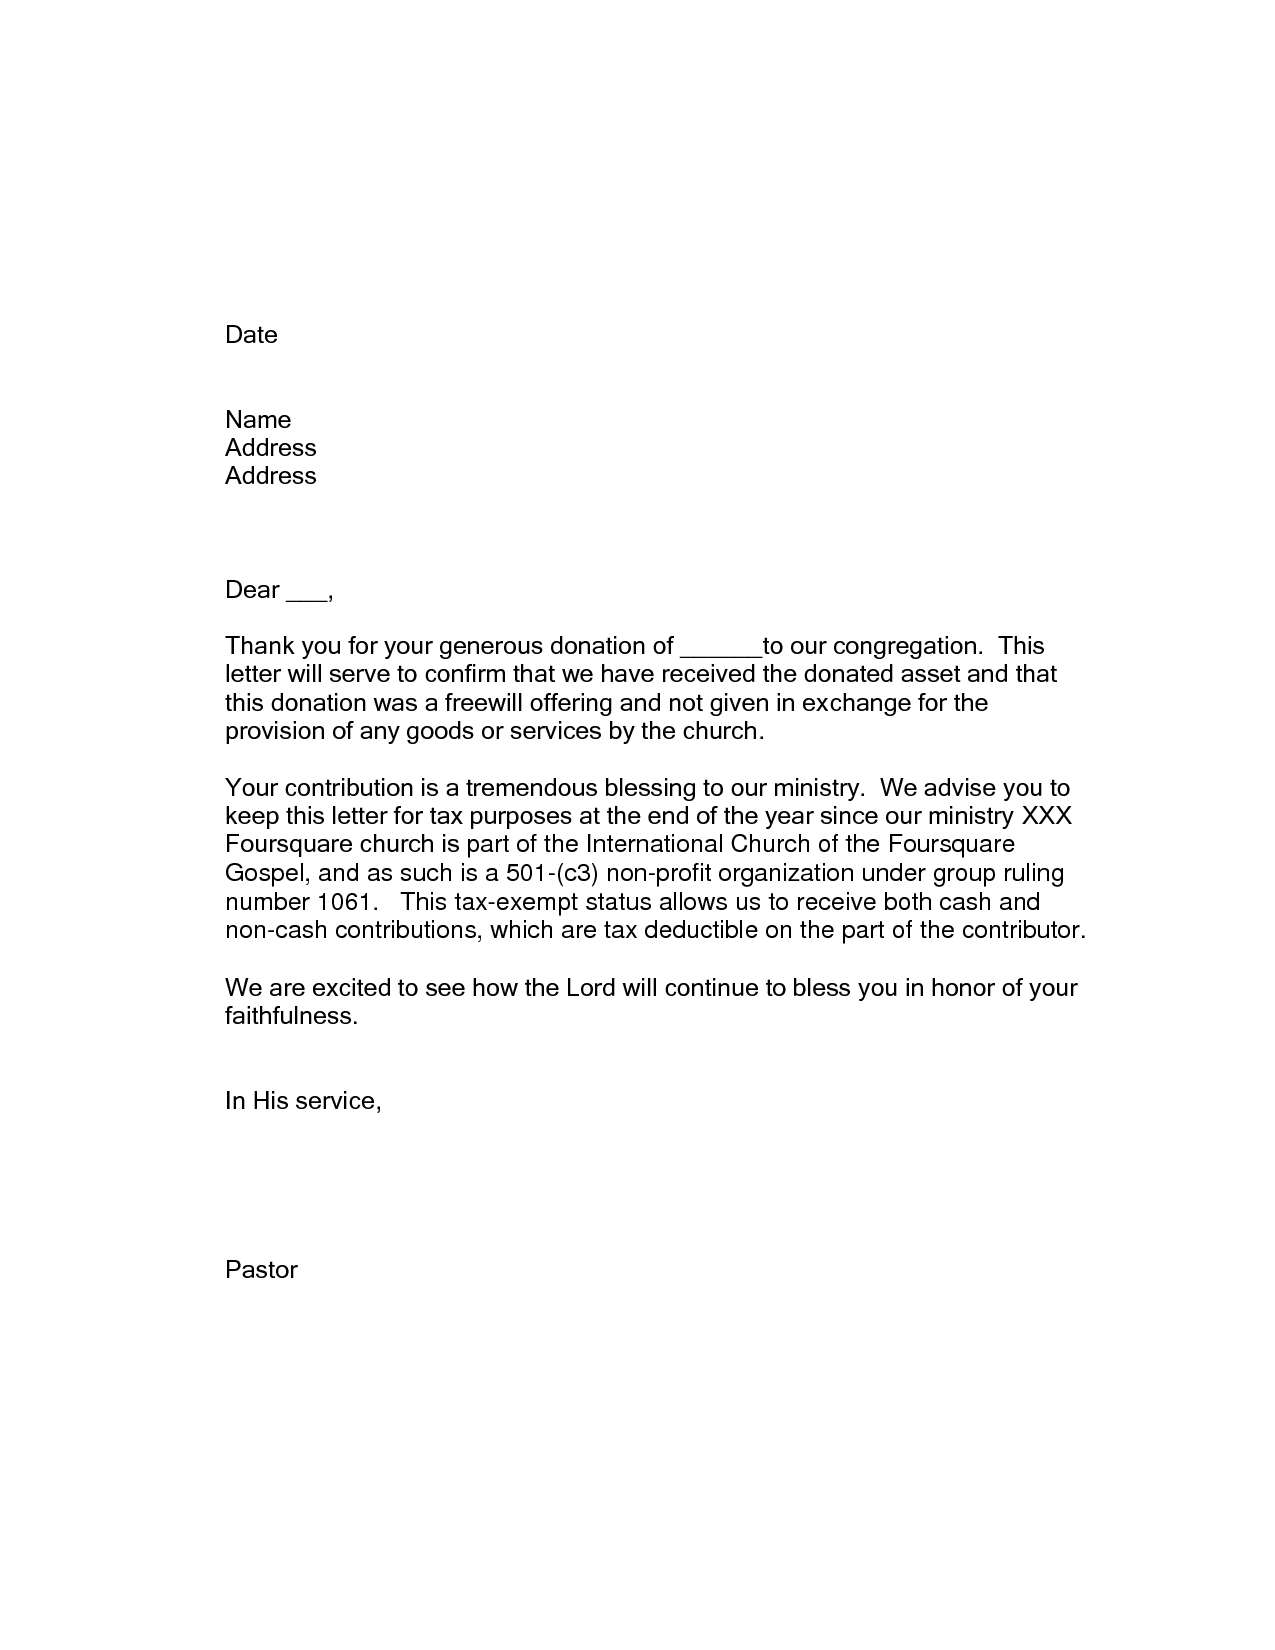 Church Donation Letter for Tax Purposes Template - Thank You Letter for Church Contribution Choice Image Letter